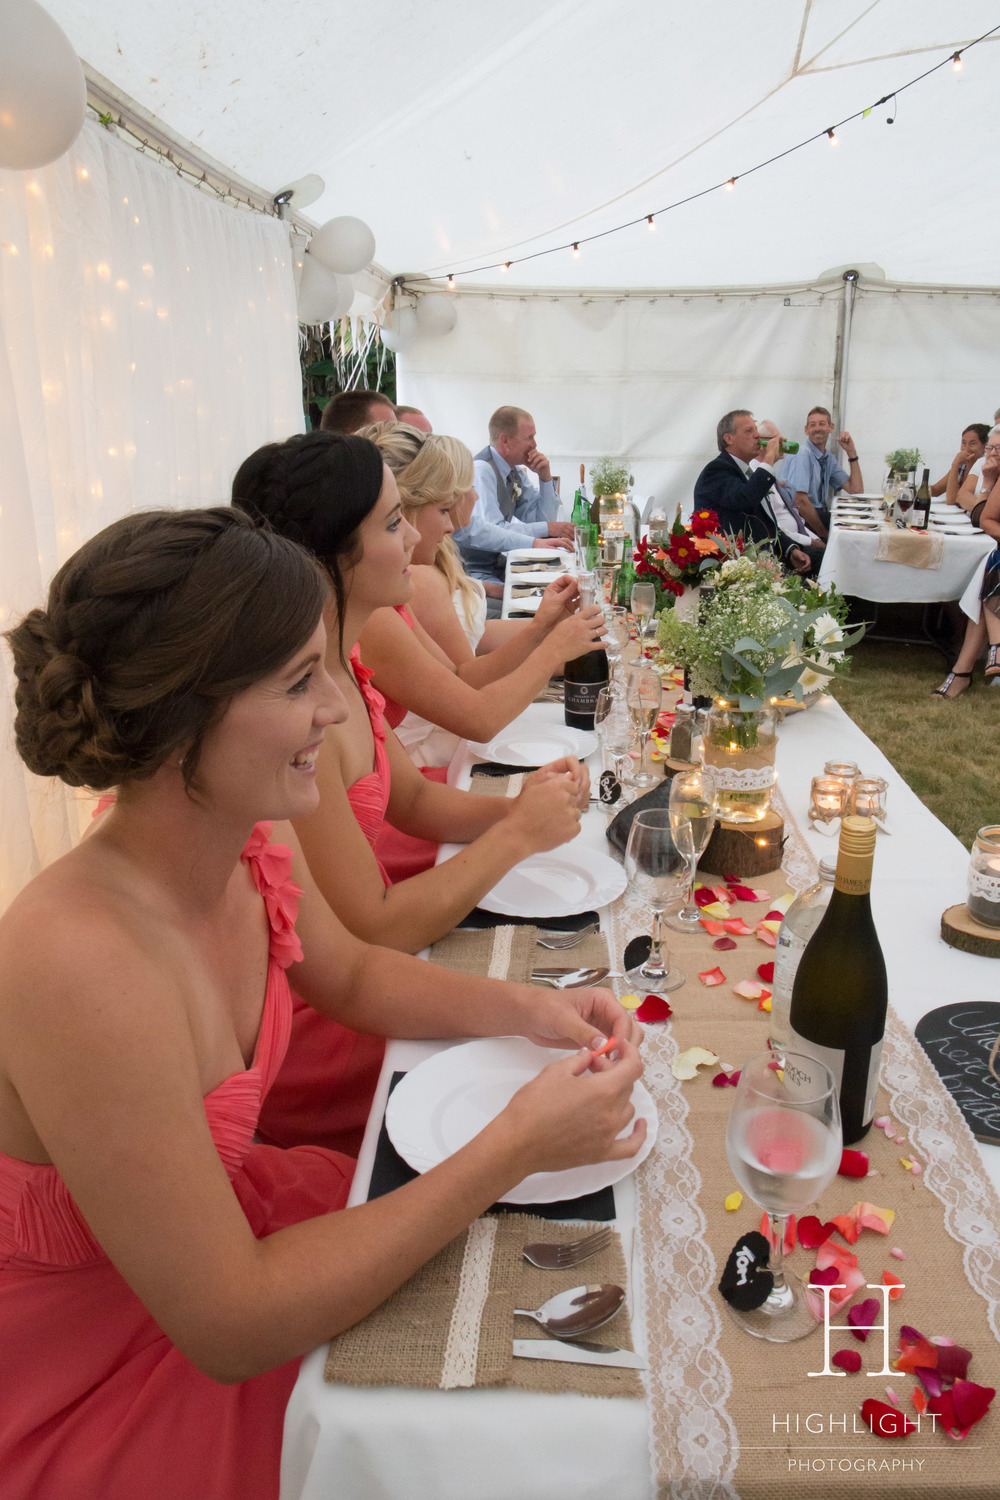 highlight_photography_wedding_new_zealand_houghton_bay.jpg